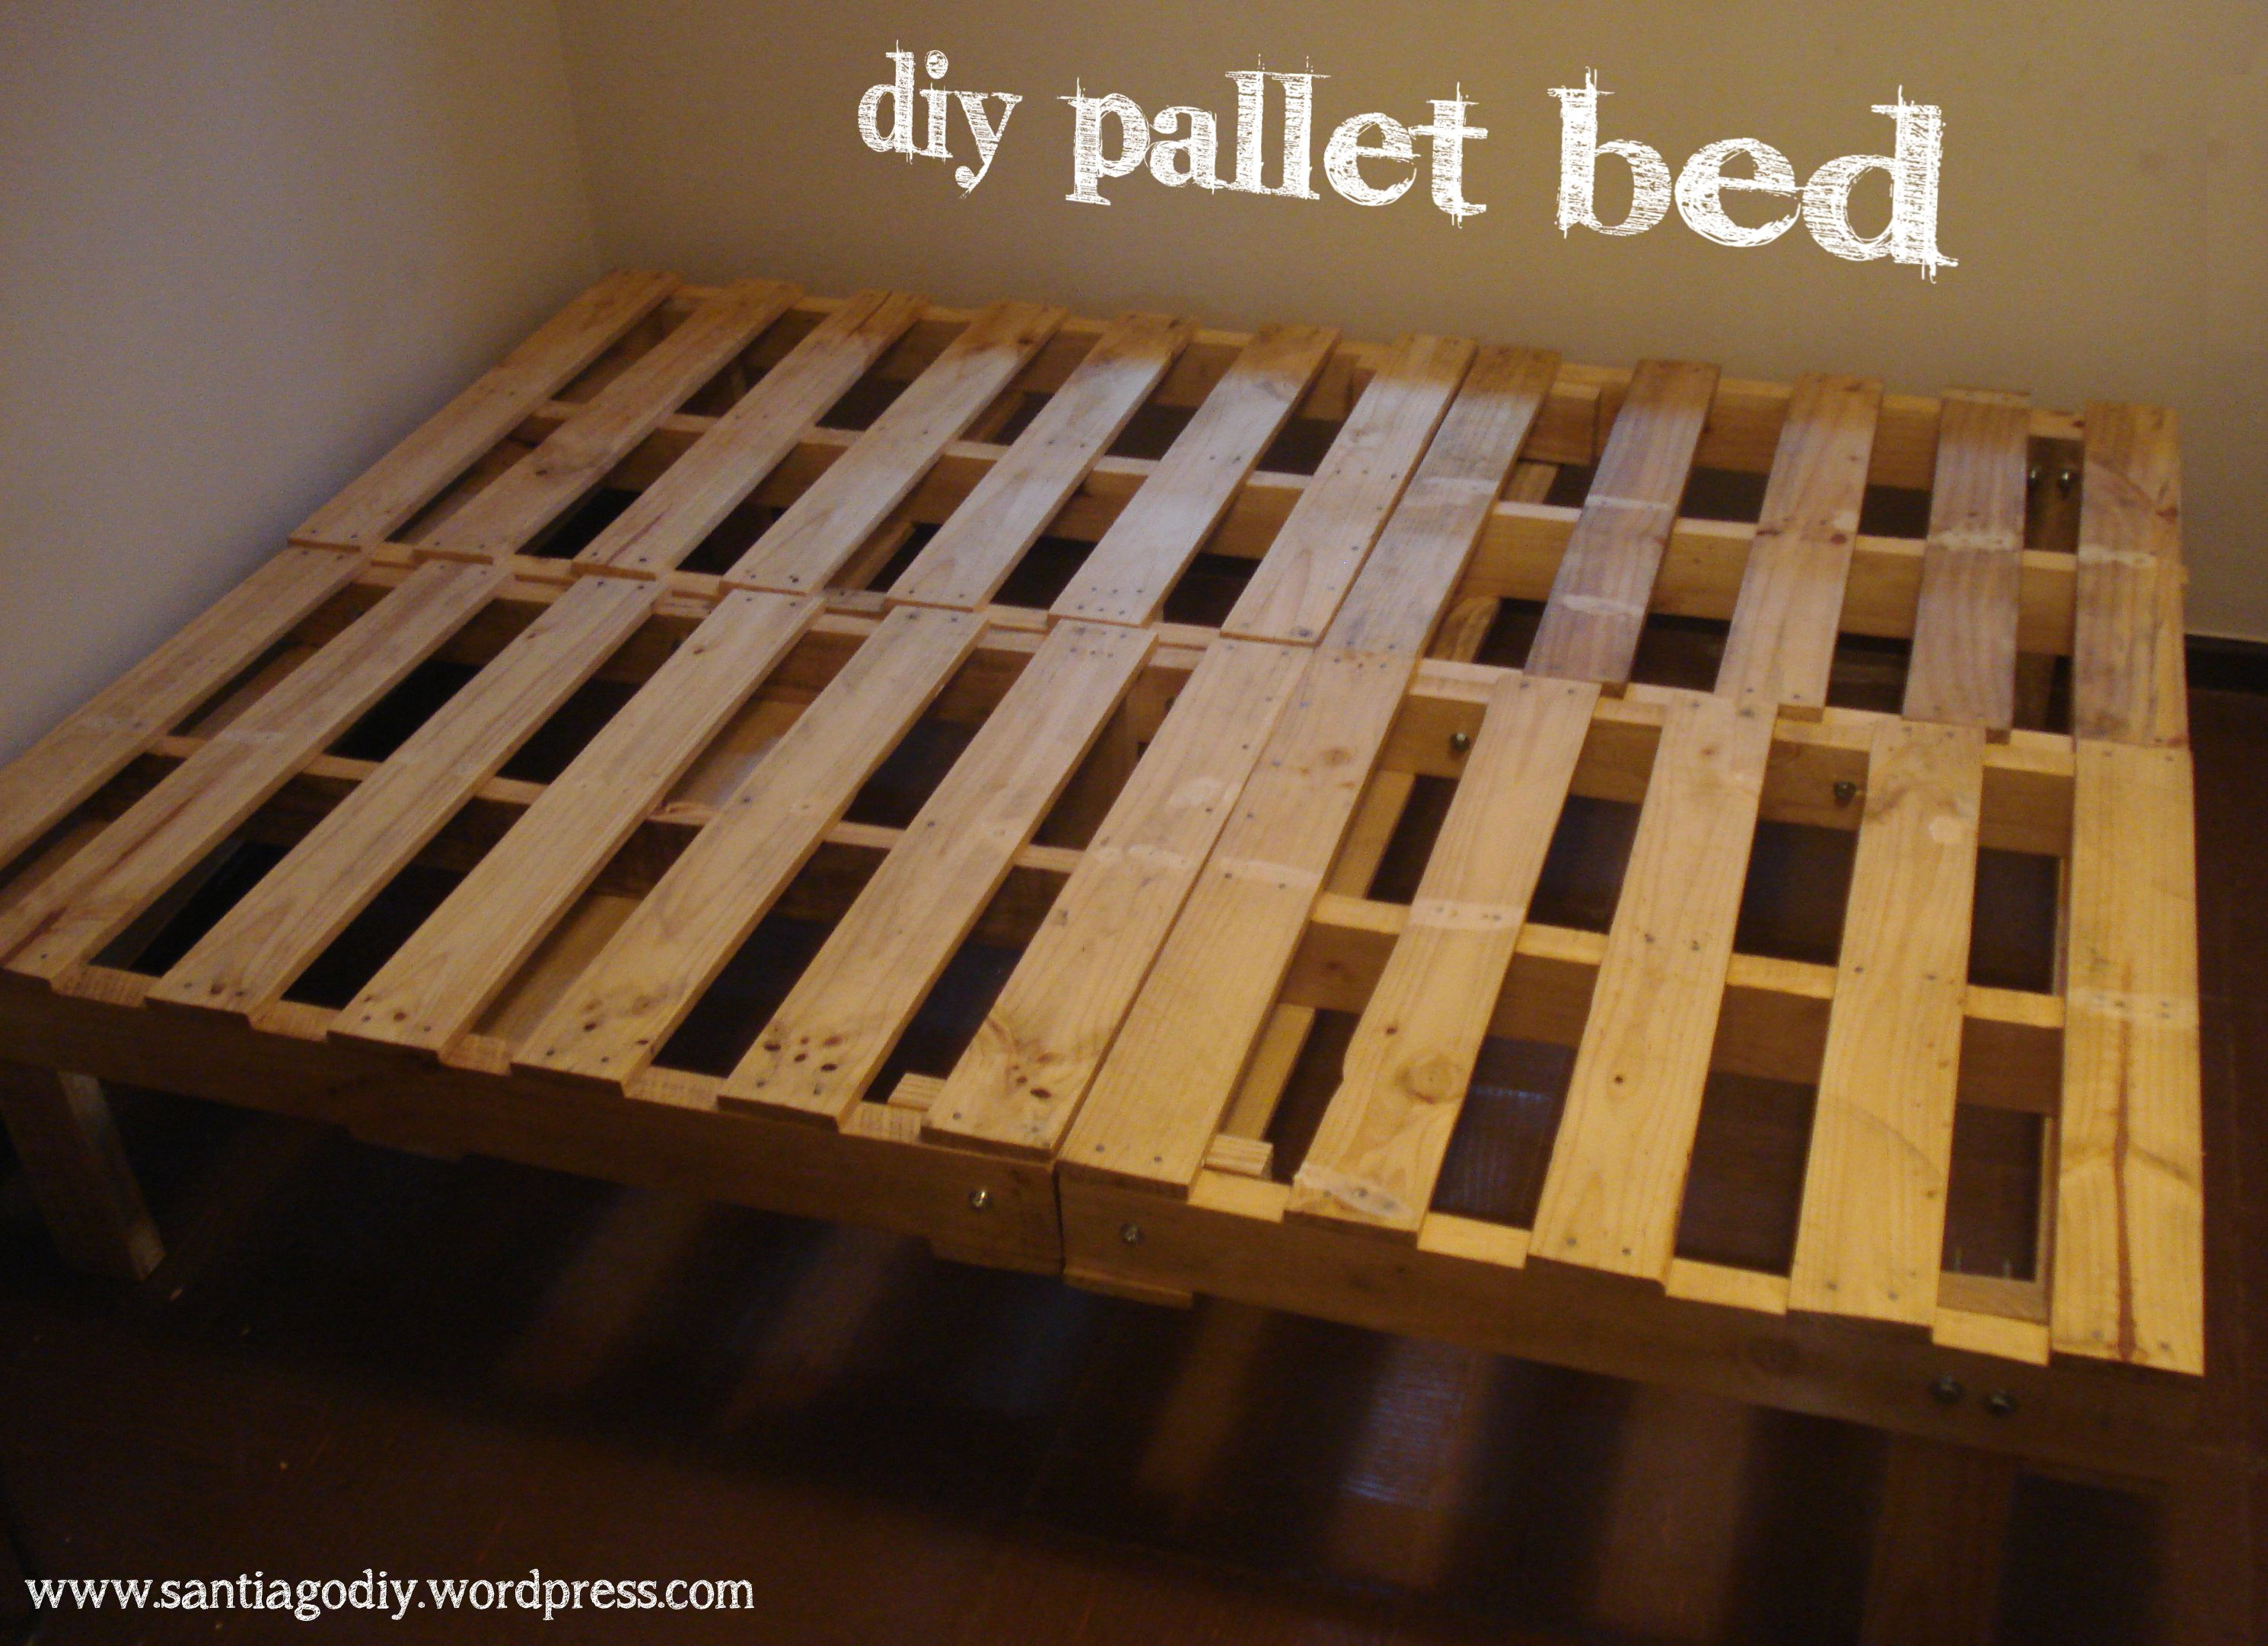 17 easy to build diy platform beds perfect for any home for Simple diy platform bed